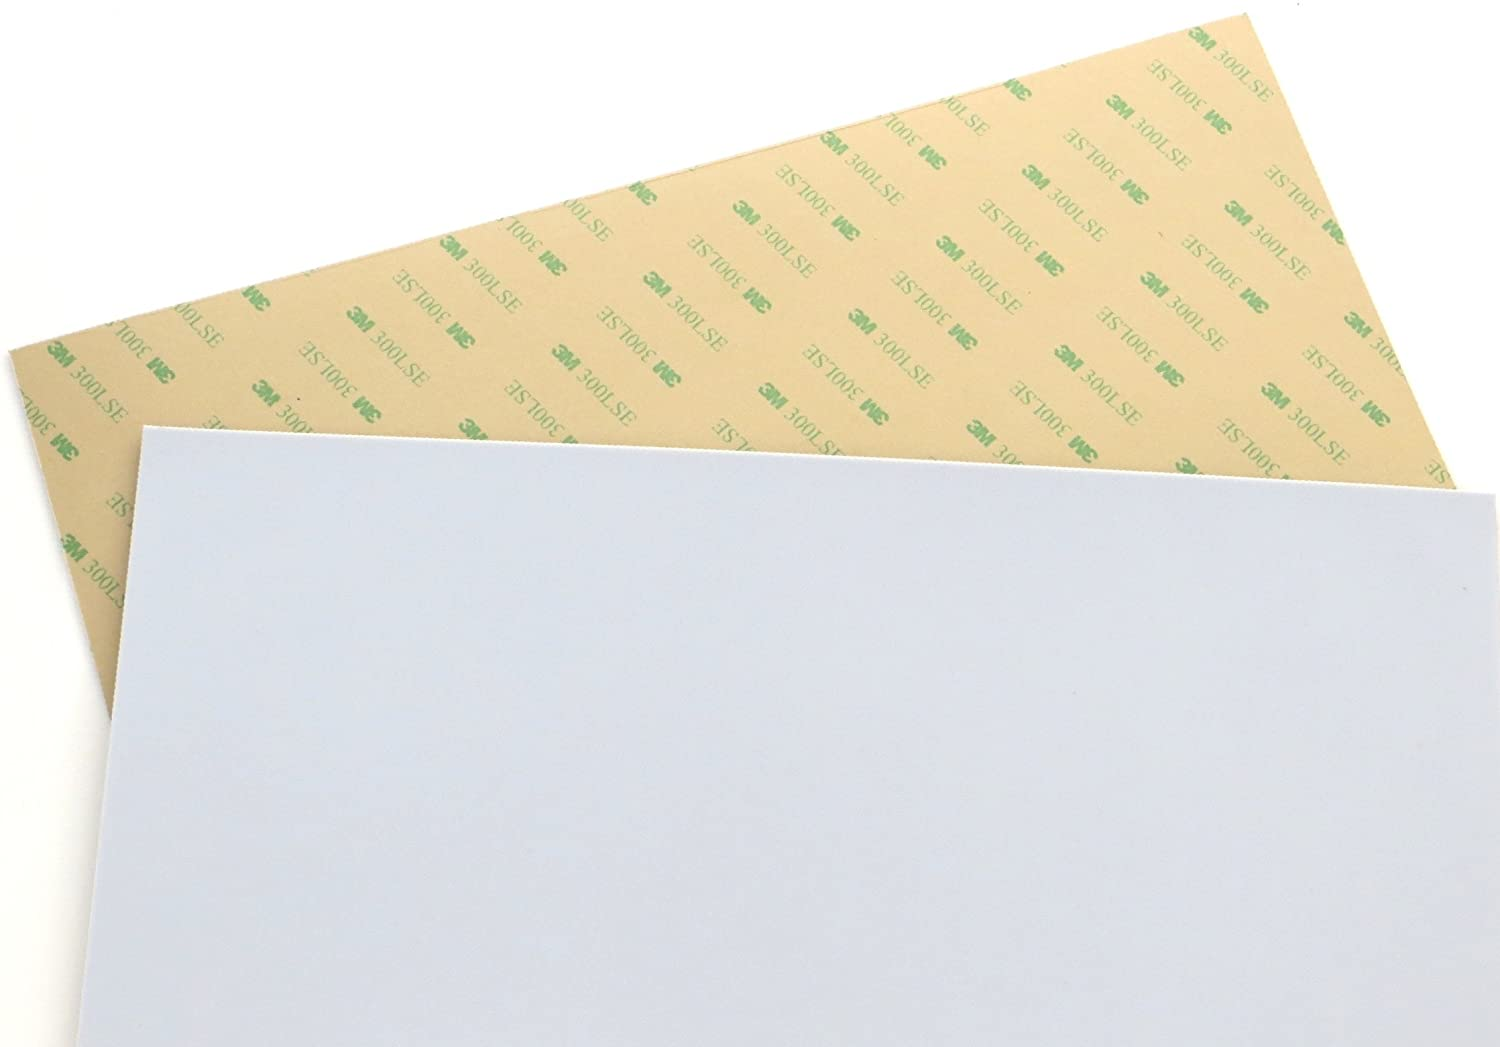 "Teflon (PTFE) sheet Size 12"" x 12"", 0.03"" (1/32"") thick, with 3M 300LSE industrial-strength self-adhesive backing [TEFLON12x12-3M]"